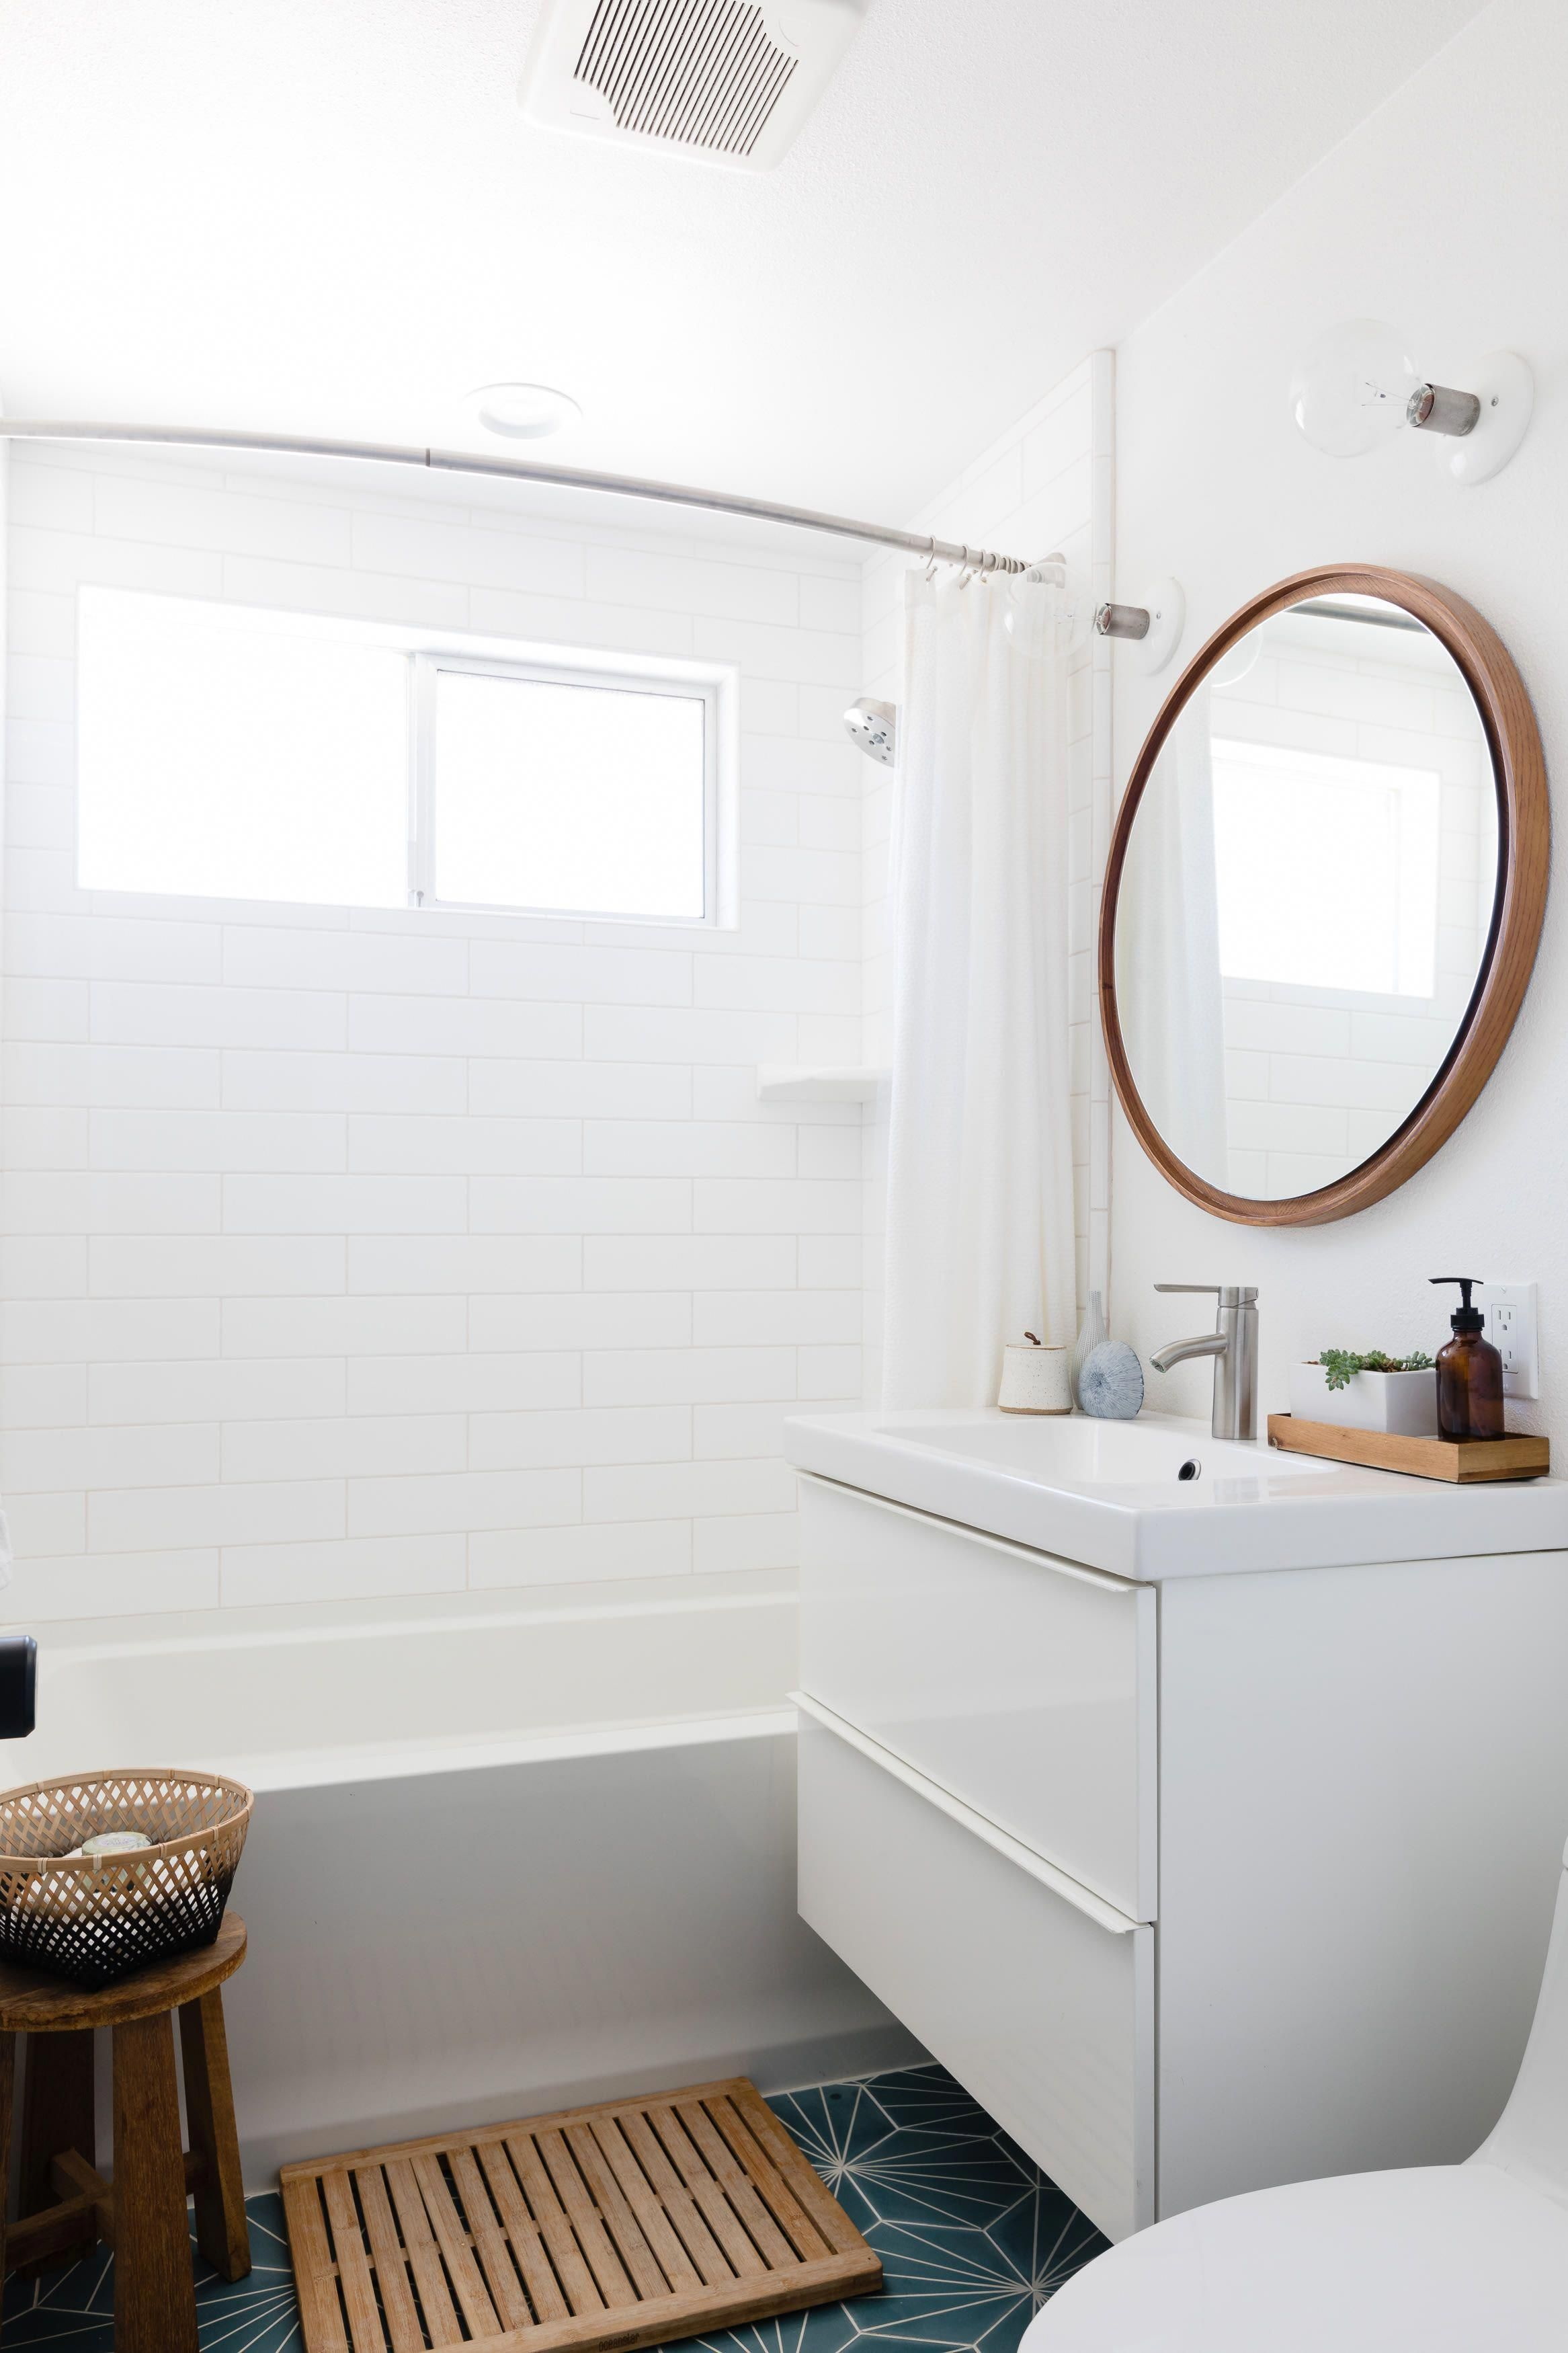 The guest bathroom tile is Marrakech Design's Dandelion pattern. The lighting is Schoolhouse Electric, the mirror West Elm, and the vanity is IKEA's GODMORGON high gloss white with ODENSVIK sink. #bathroommirror #schoolhouseelectric